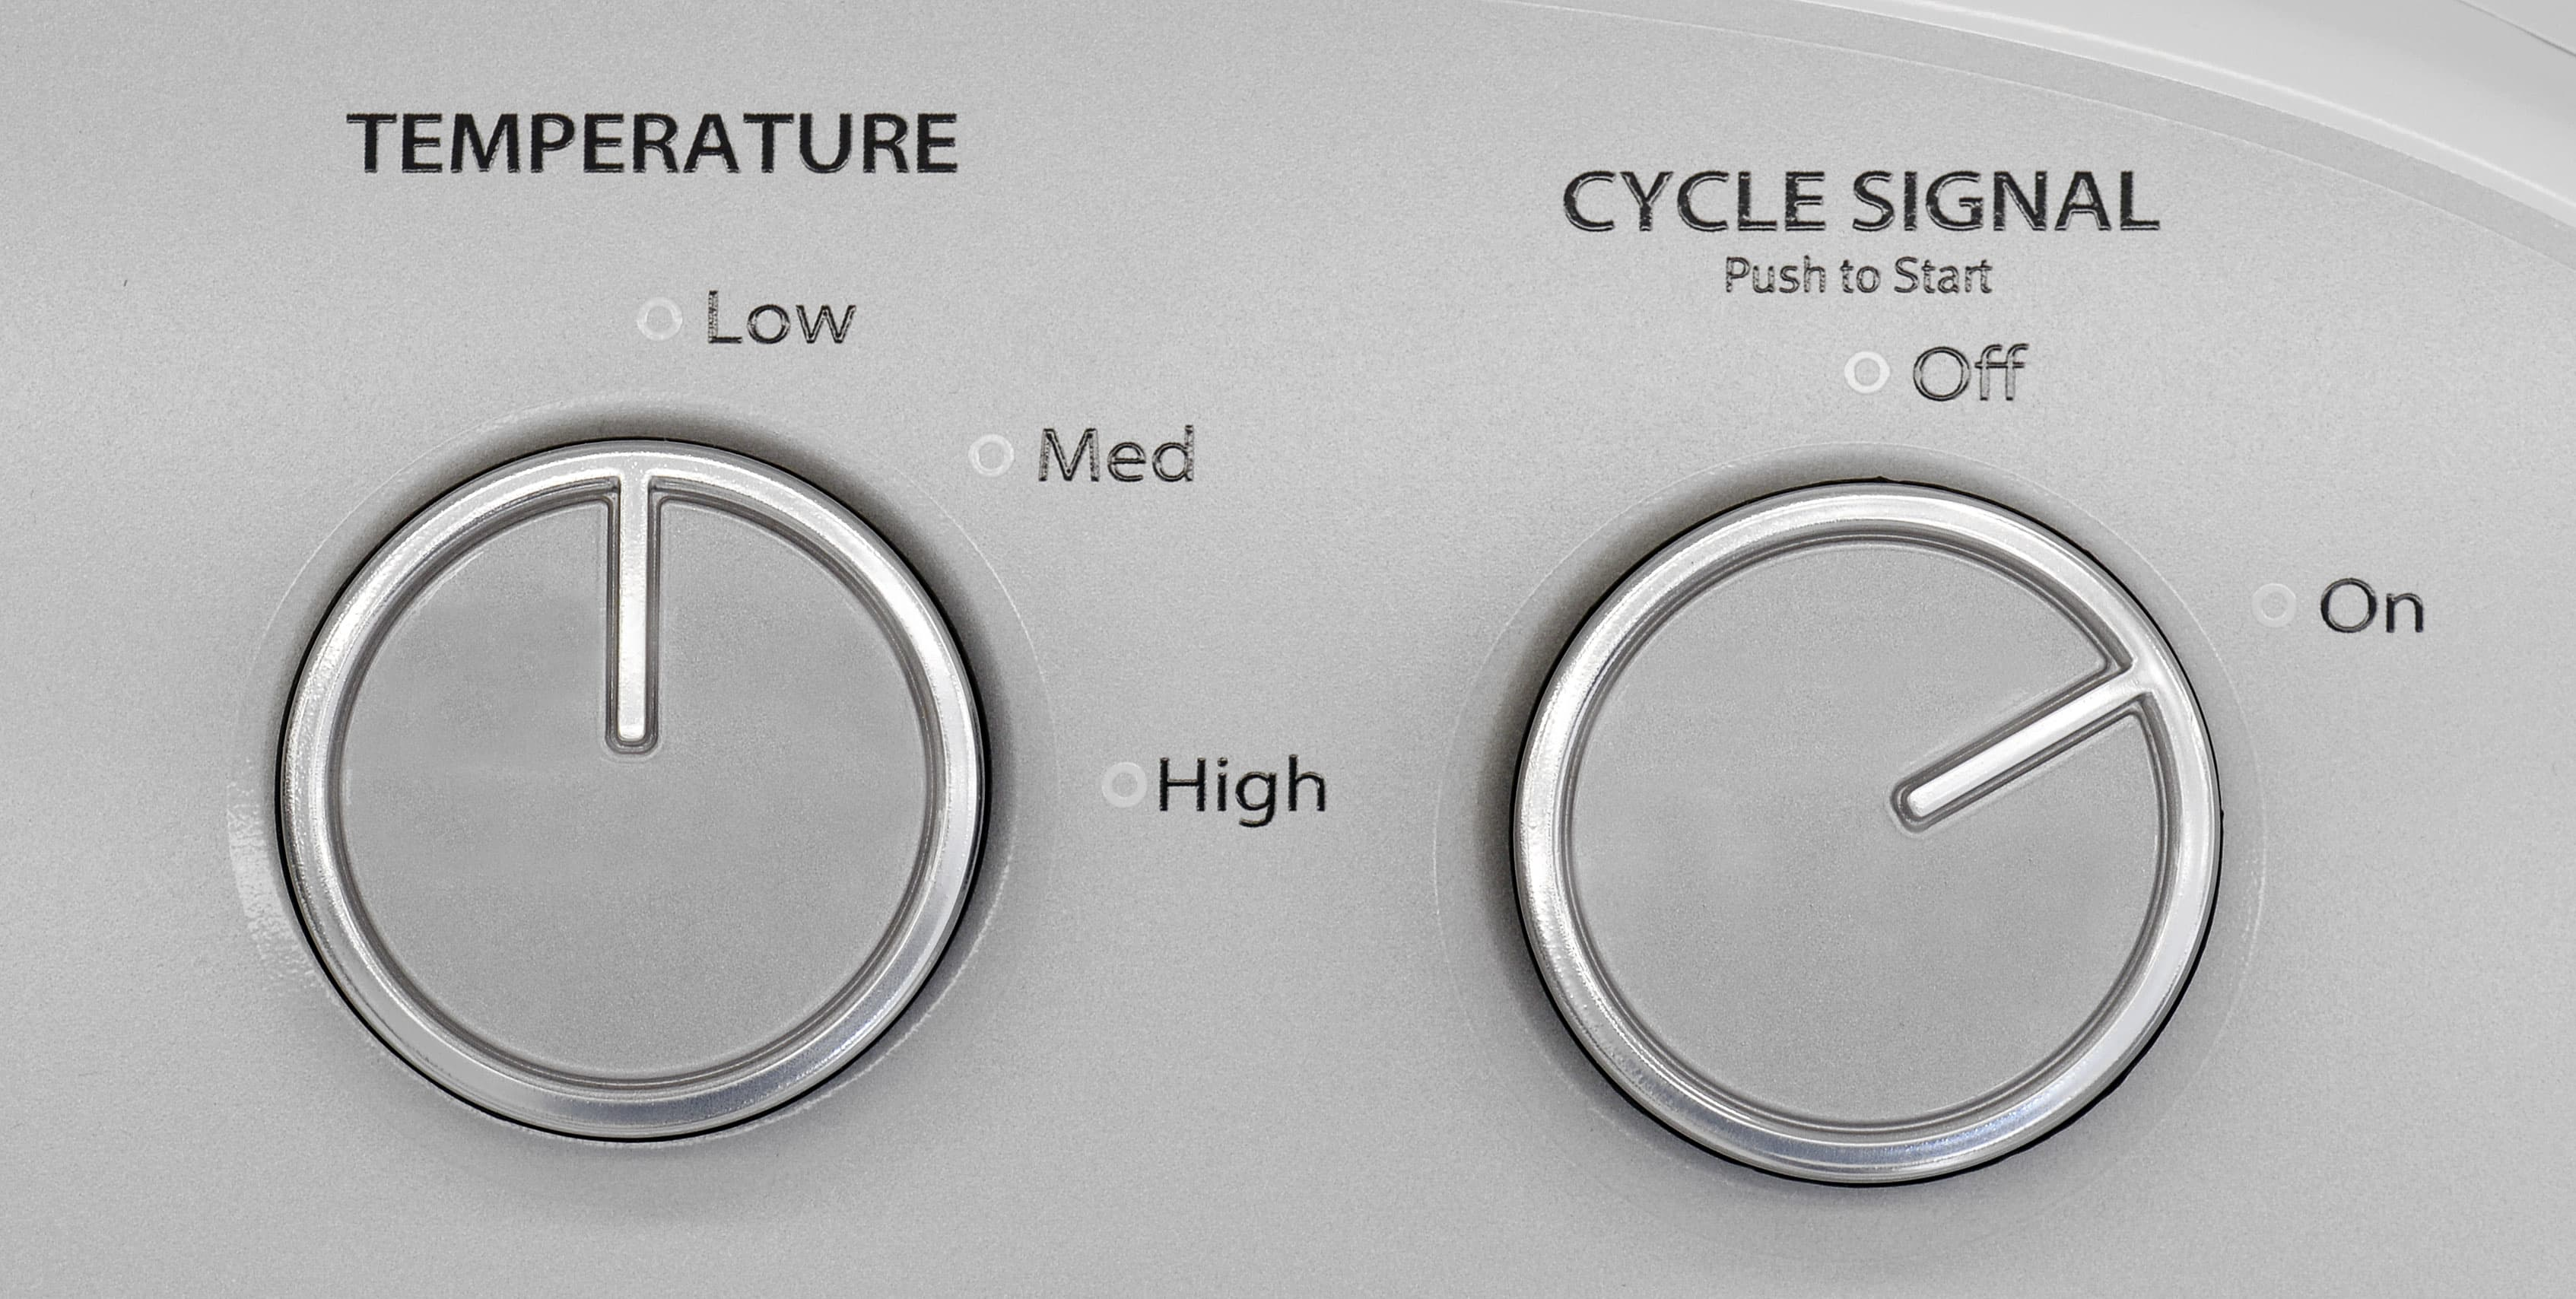 Three temperature settings are all the cycle customizability the Whirlpool WED4815EW offers.